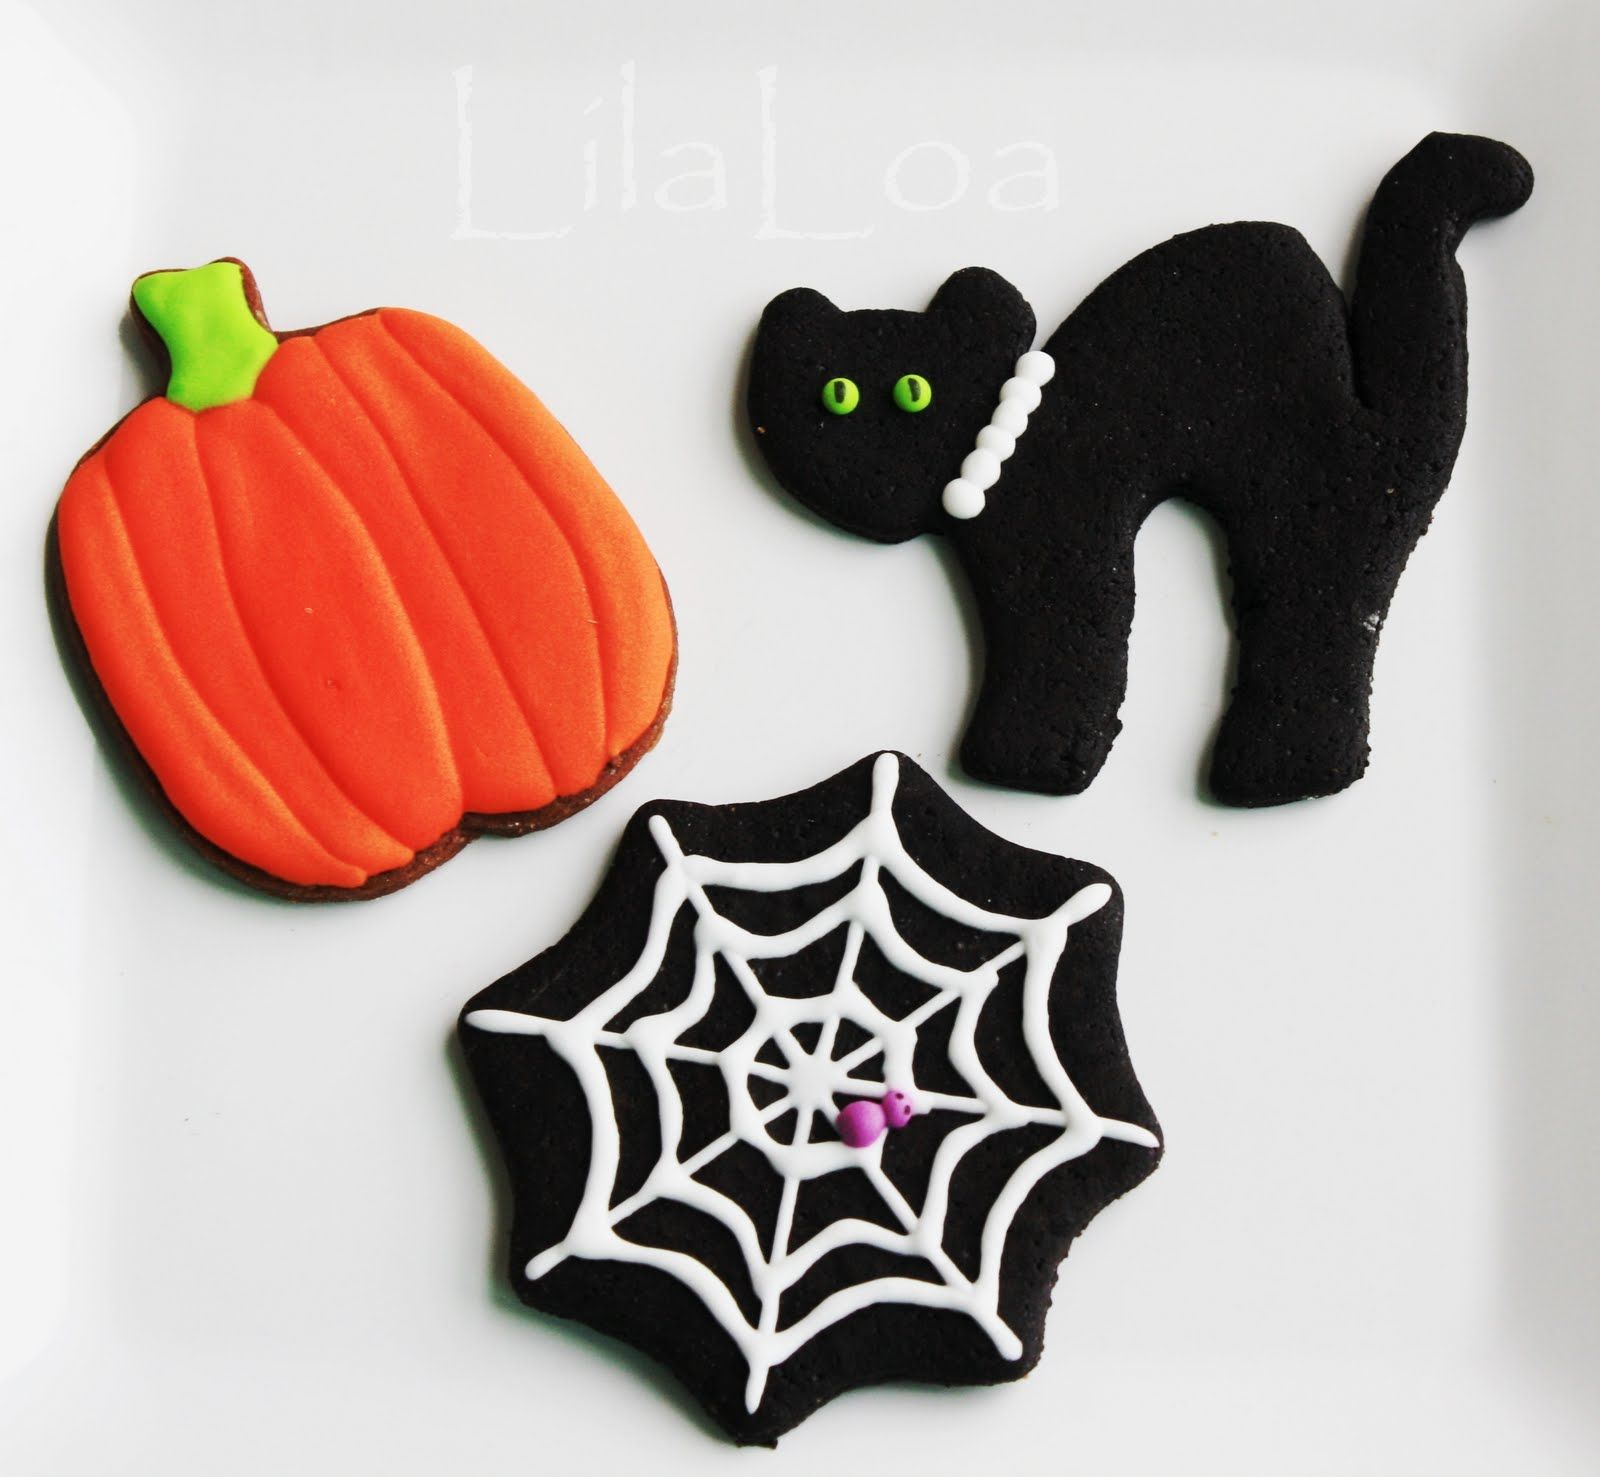 LilaLoa BLACK cookies for Halloween Halloween Cookies Pinterest - Halloween Decorated Cookies